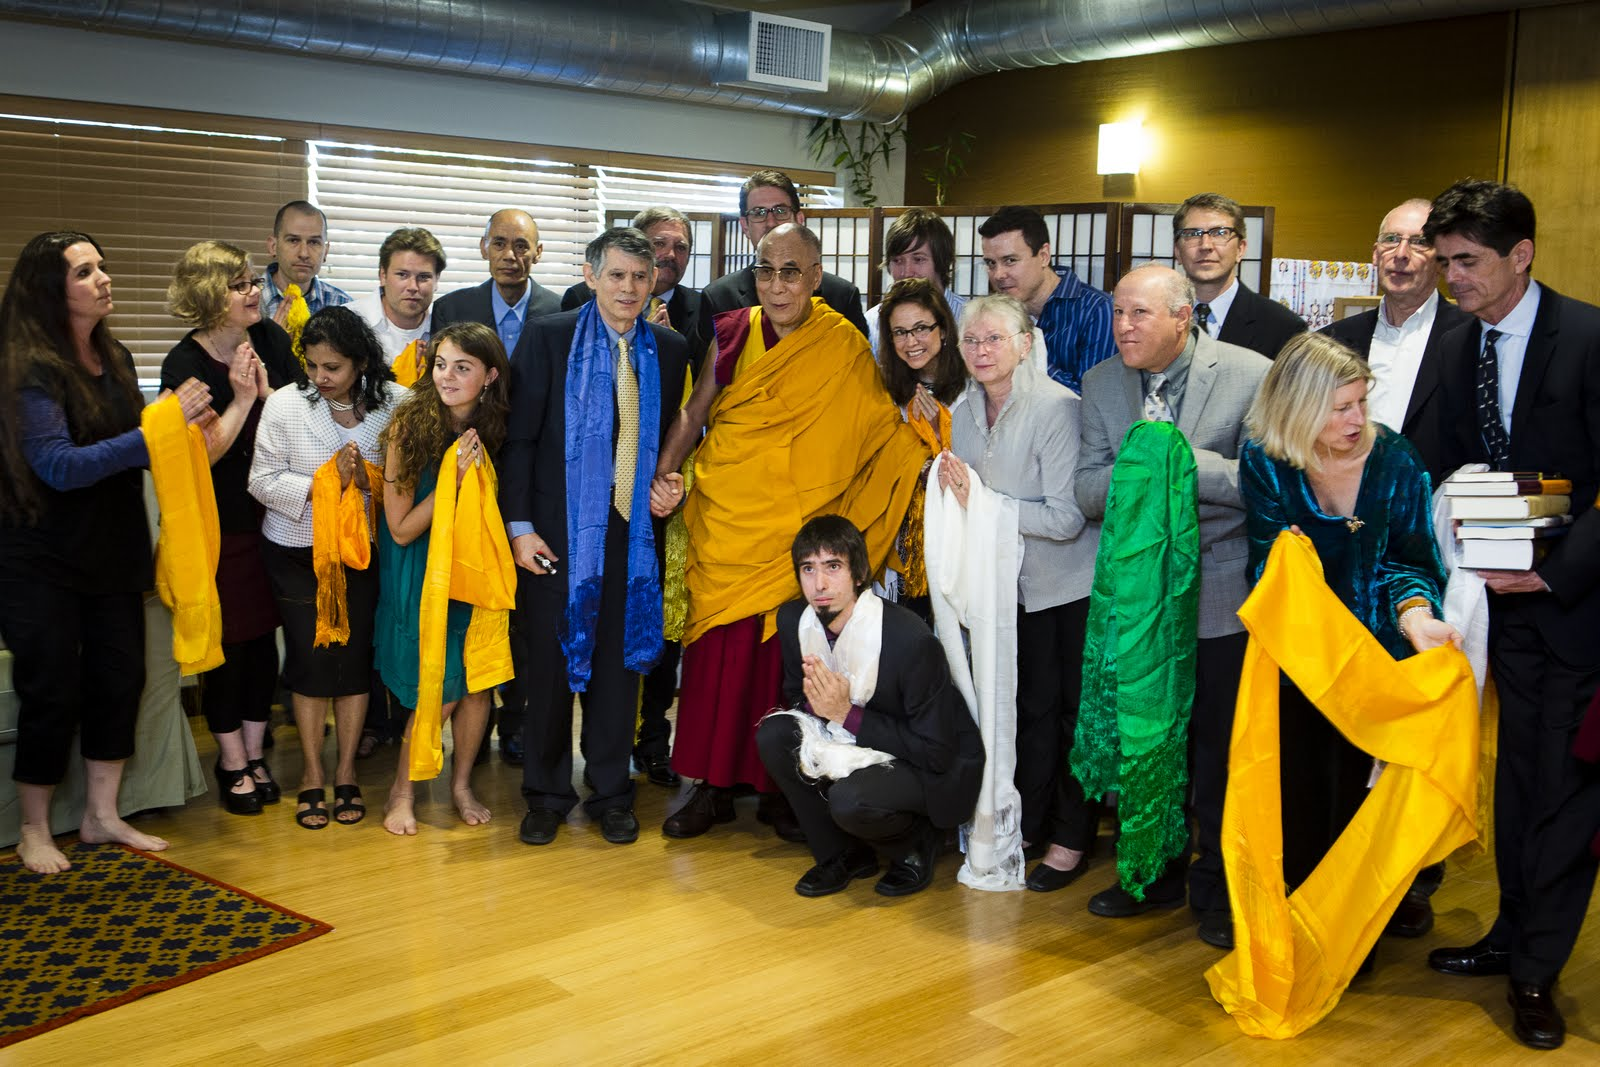 FPMT International Office Staff and present Board of Directors preparing for a photo opportunity with His Holiness the Dalai Lama. Photo by Leah Nash.